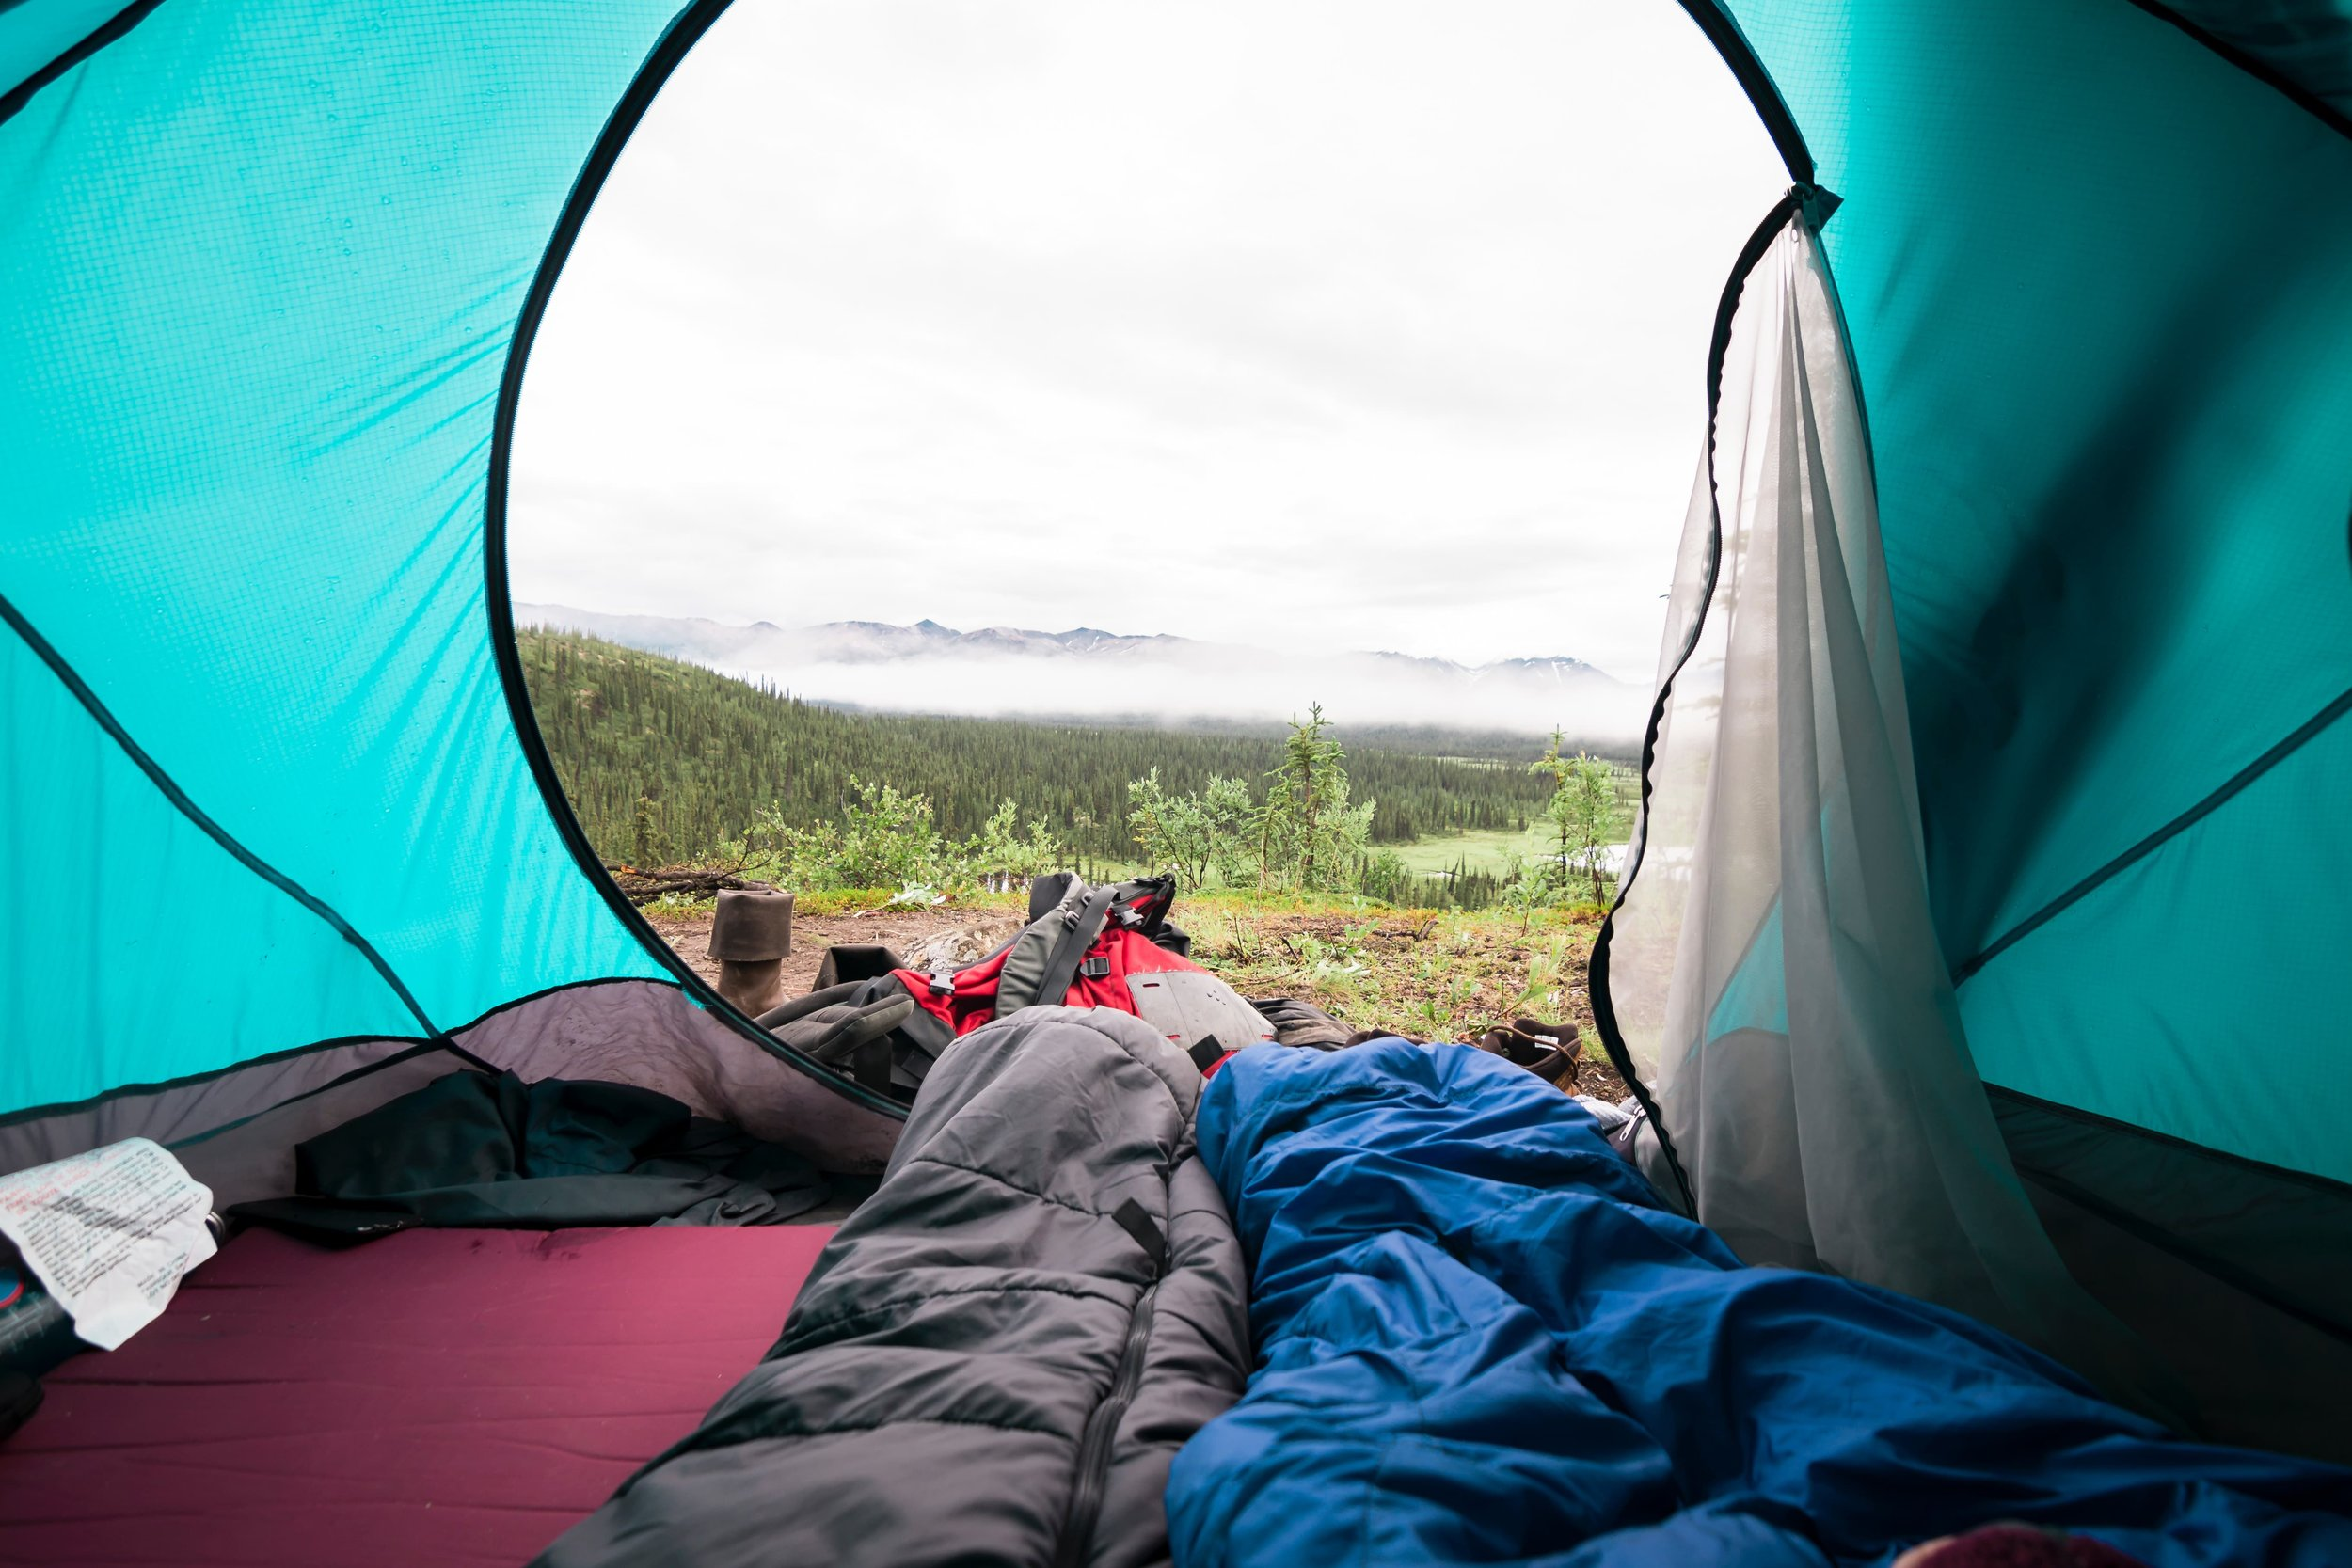 View from inside a tent with sleeping pads and sleeping bags. Photo by  Steve Halama  on  Unsplash